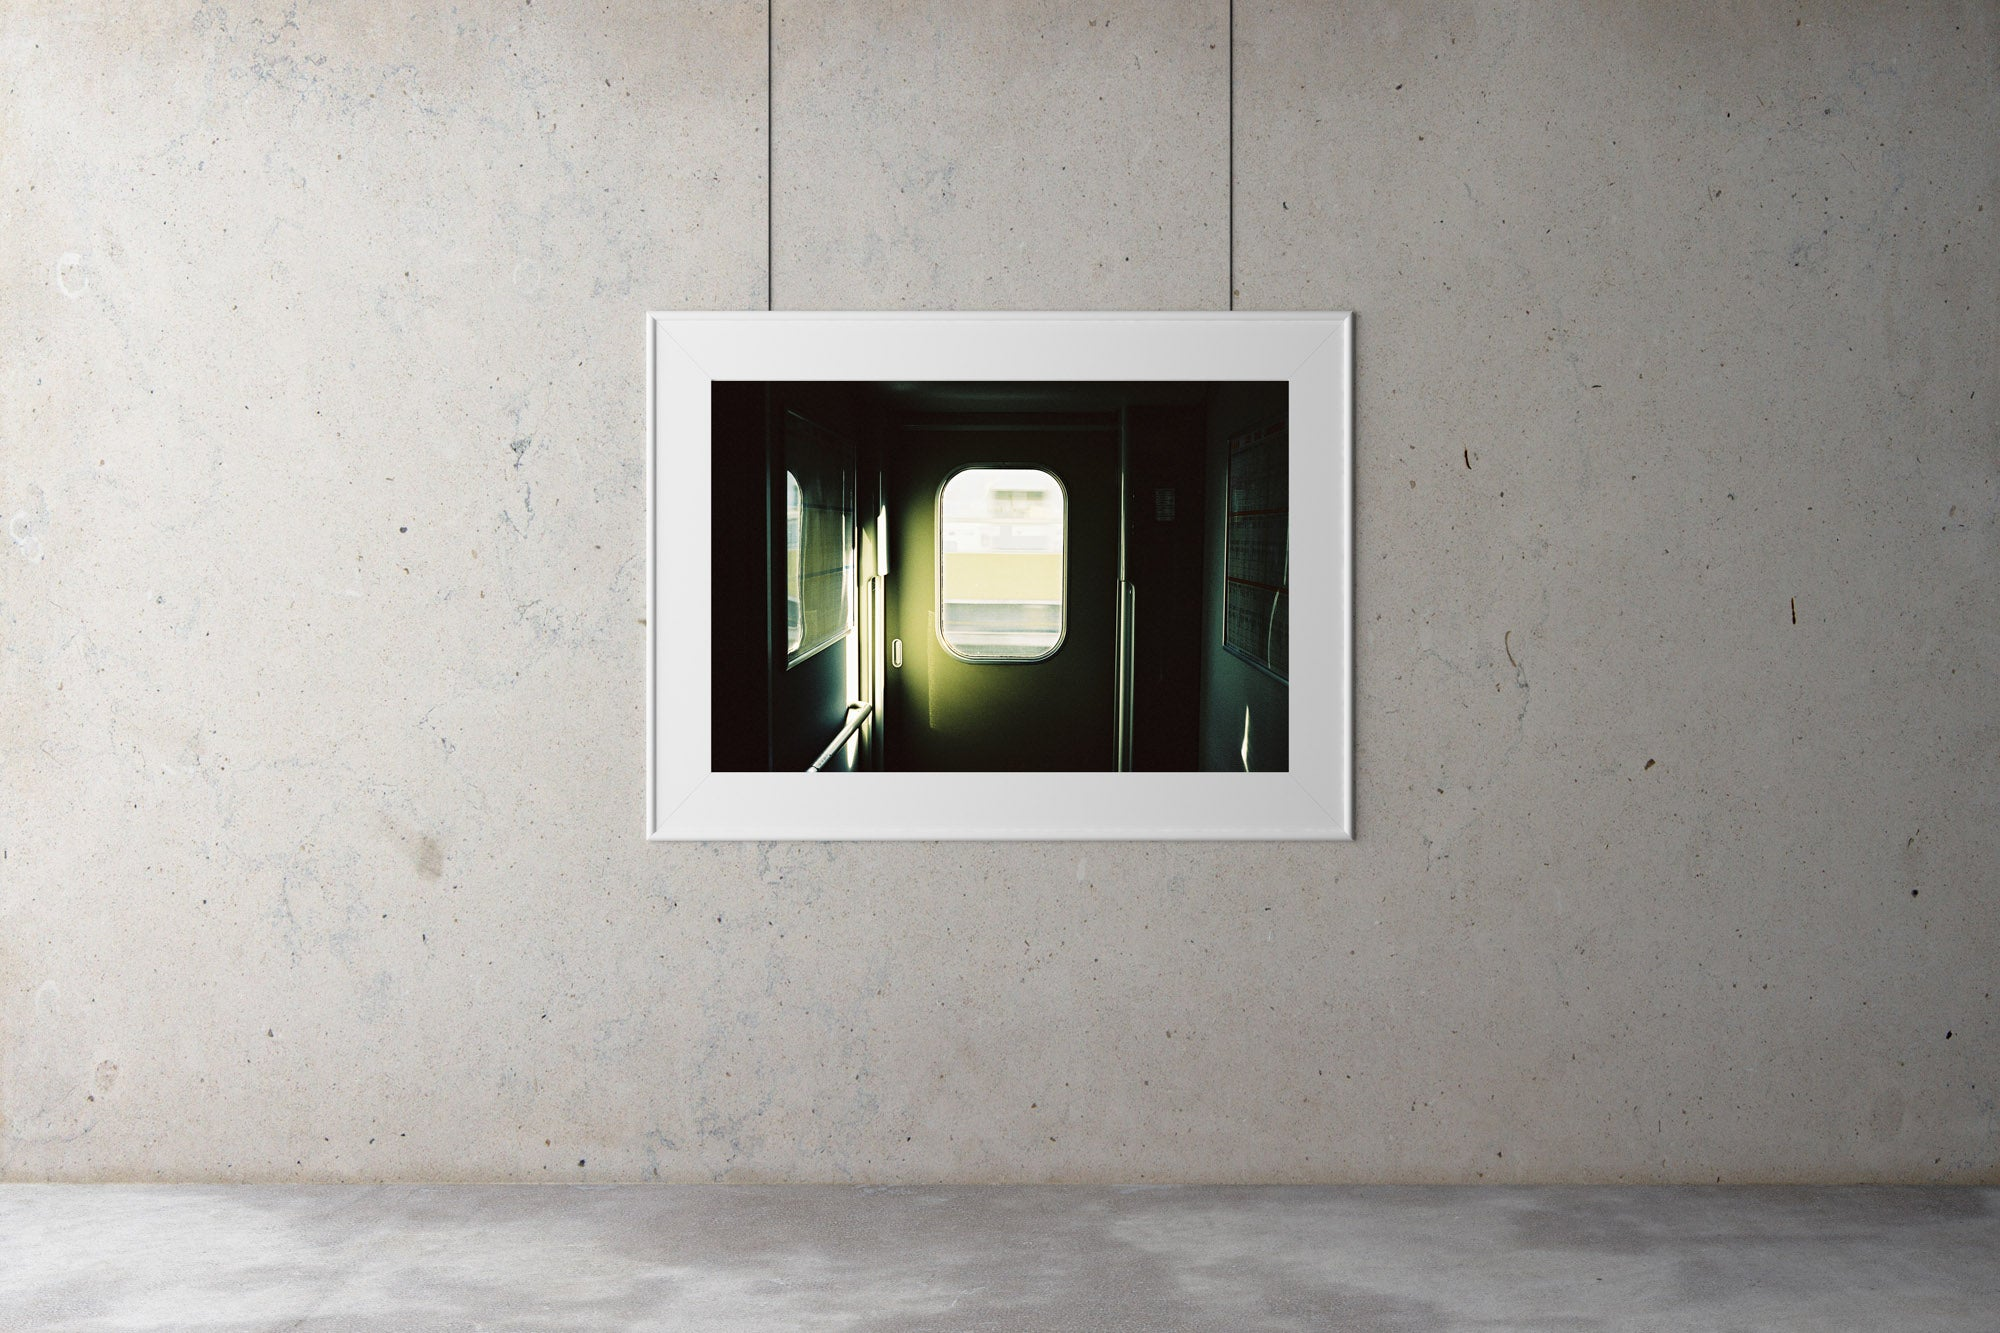 A photograph of the inside doorway in a fast train to Osaka Japan. The doorway is green. Artwork Prints, wall ar,t Japan, Osaka, Photographic prints,, Framed artwork,  Posters  Photography Photography for sale, Film photography, Vintage photo style,  Interior design, Film photography, Pictures framed, artwork, travel photography, 35mm film